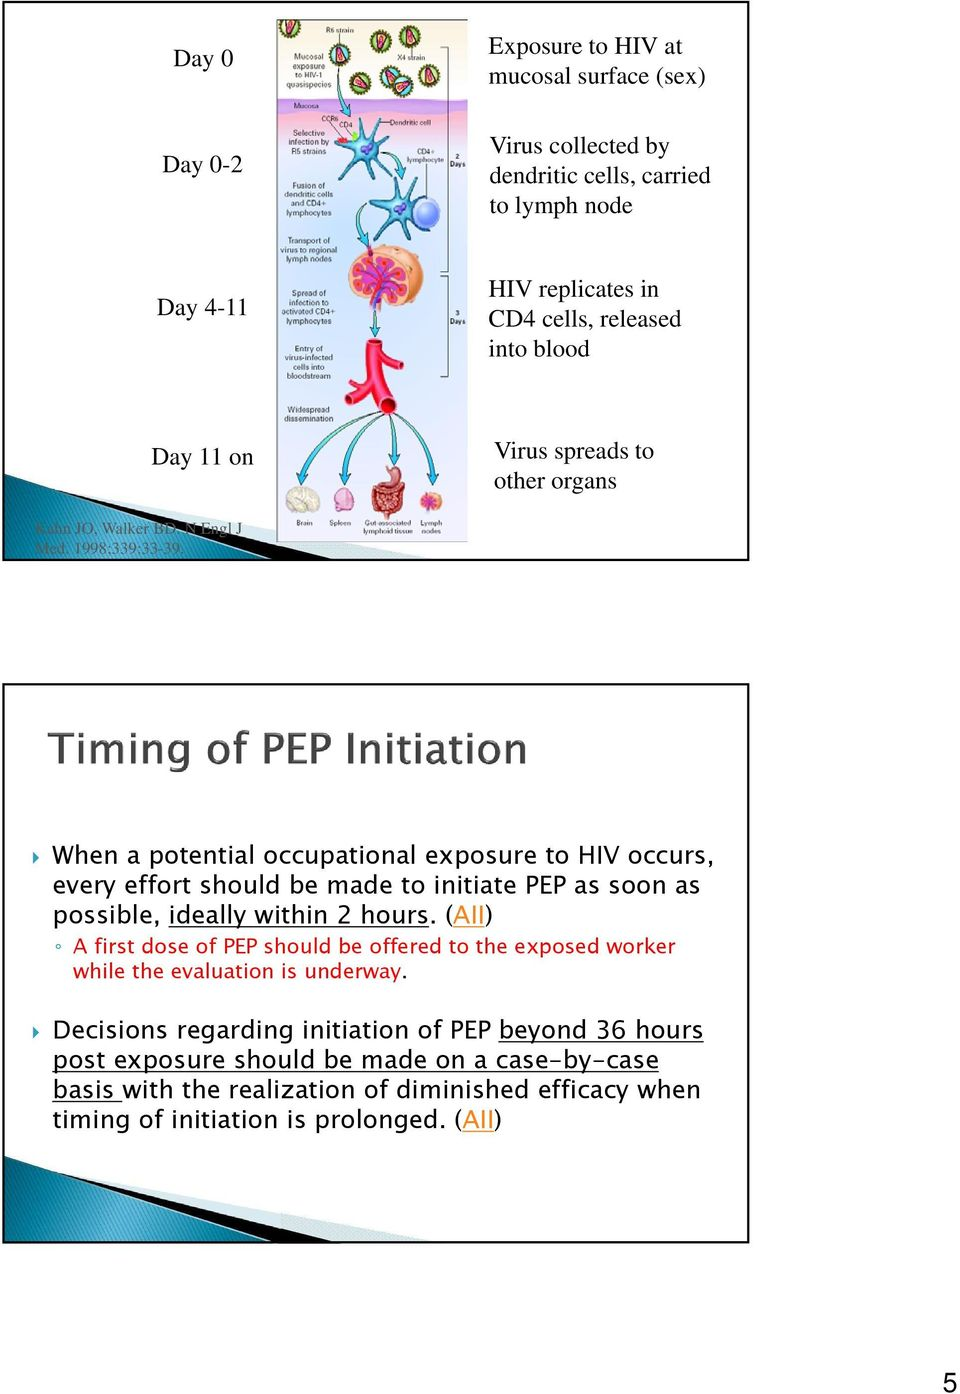 When a potential occupational exposure to HIV occurs, every effort should be made to initiate PEP as soon as possible, ideally within 2 hours.